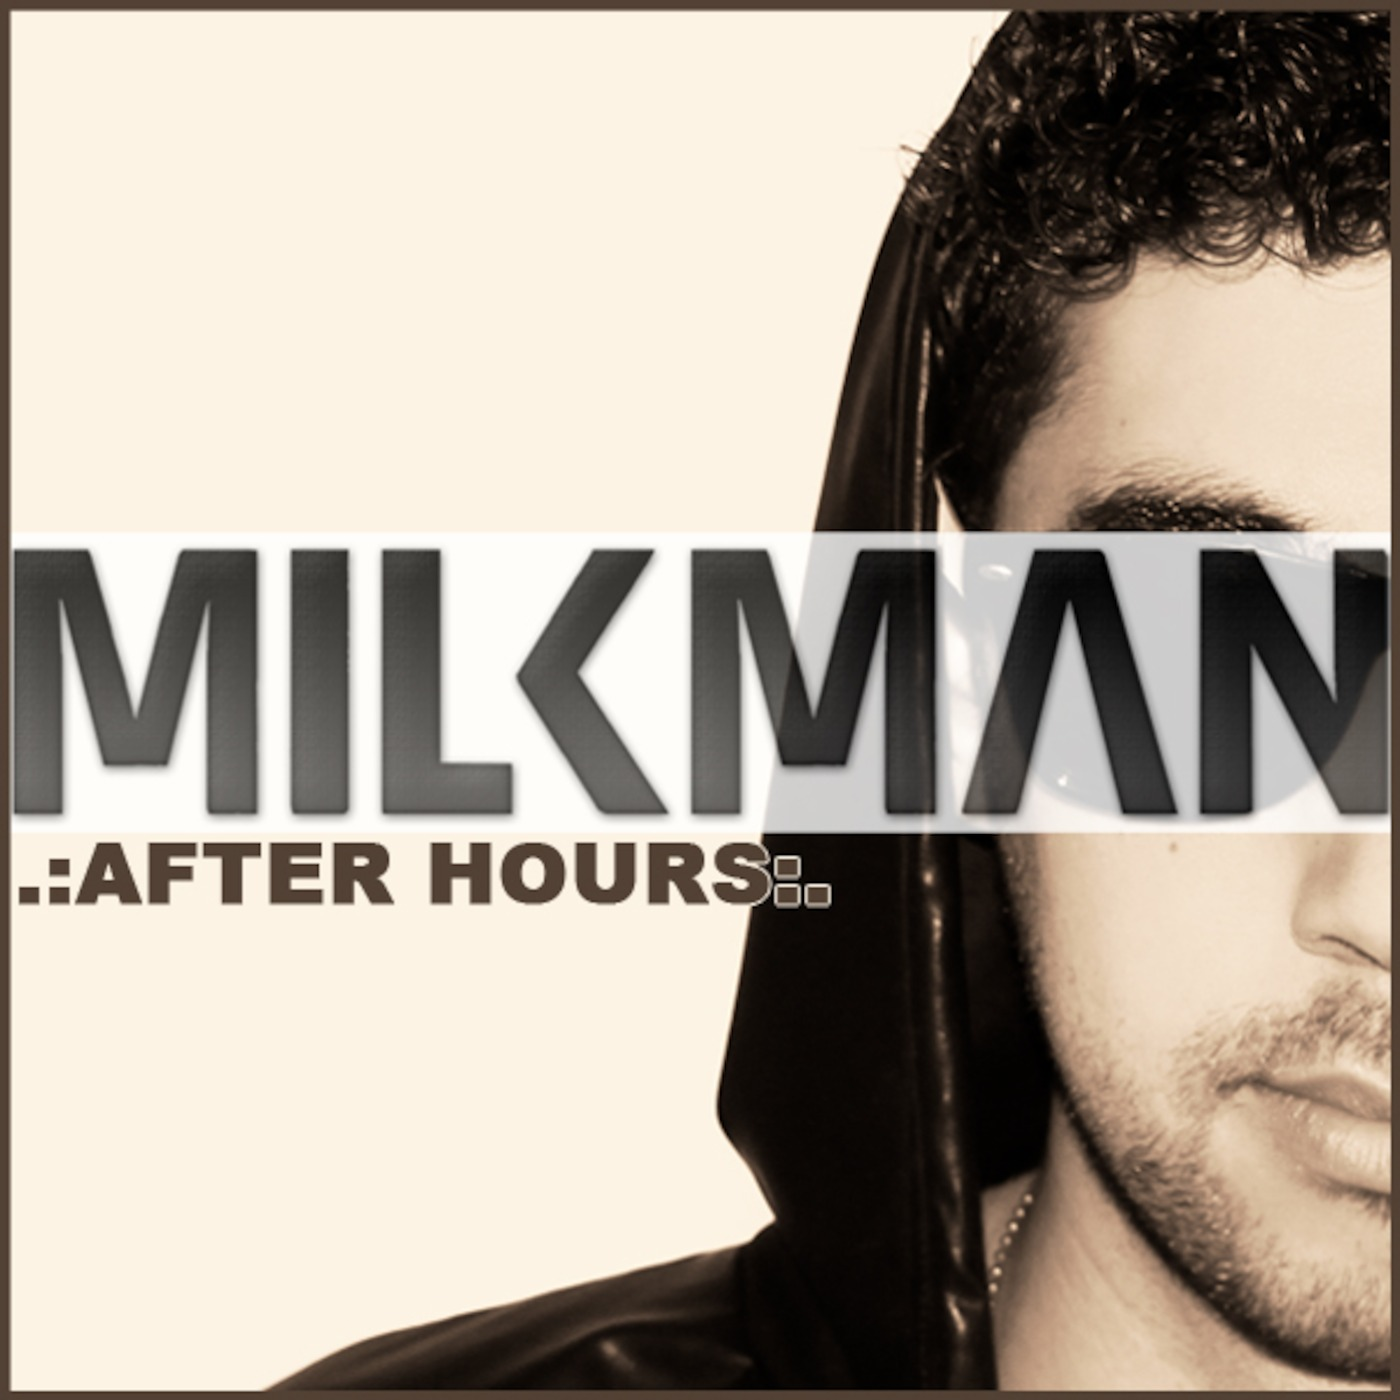 Milkman's After Hours